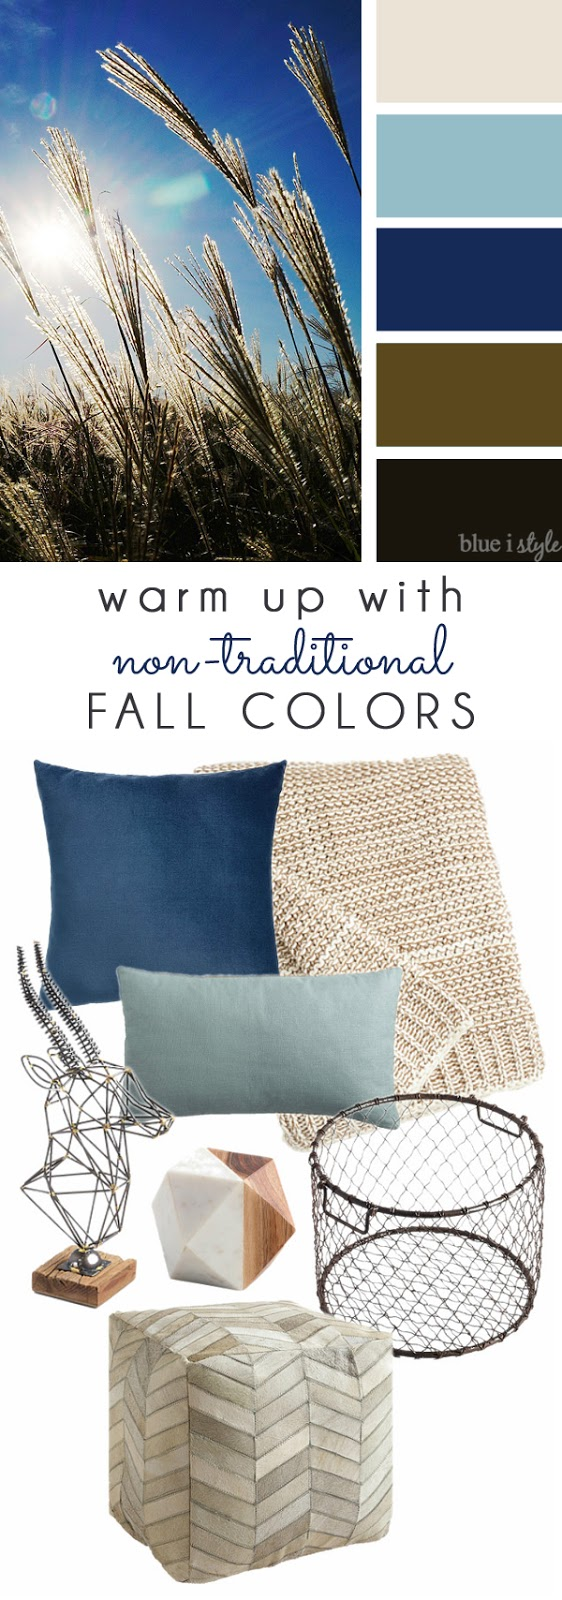 Blue and Neutral fall decor